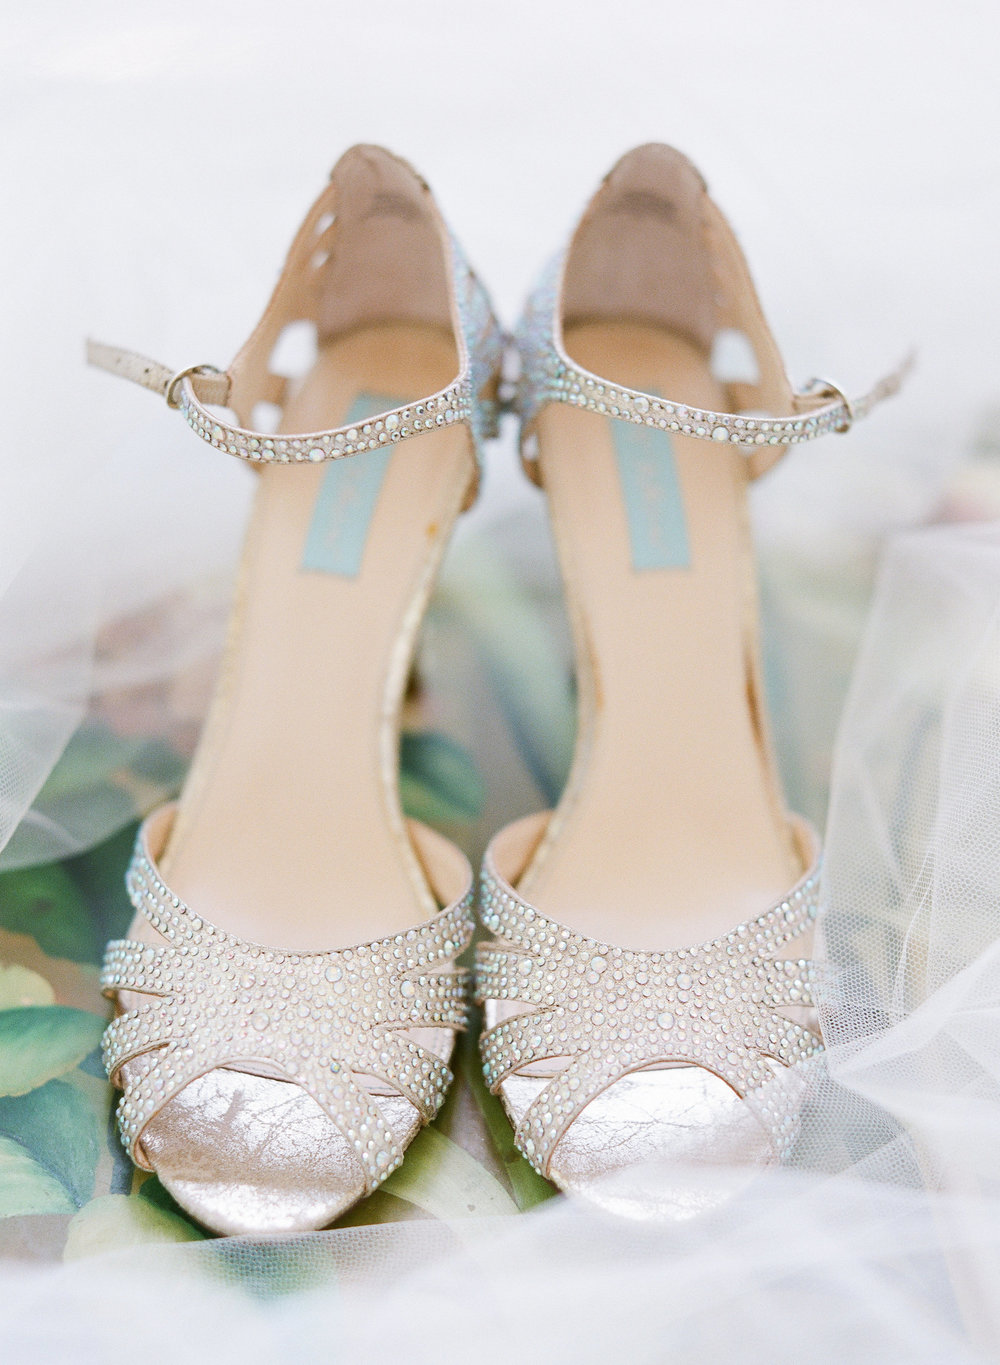 5540a-chapelhillnctraditionalsouthernweddingshoeschapelhillnctraditionalsouthernweddingshoes.jpg